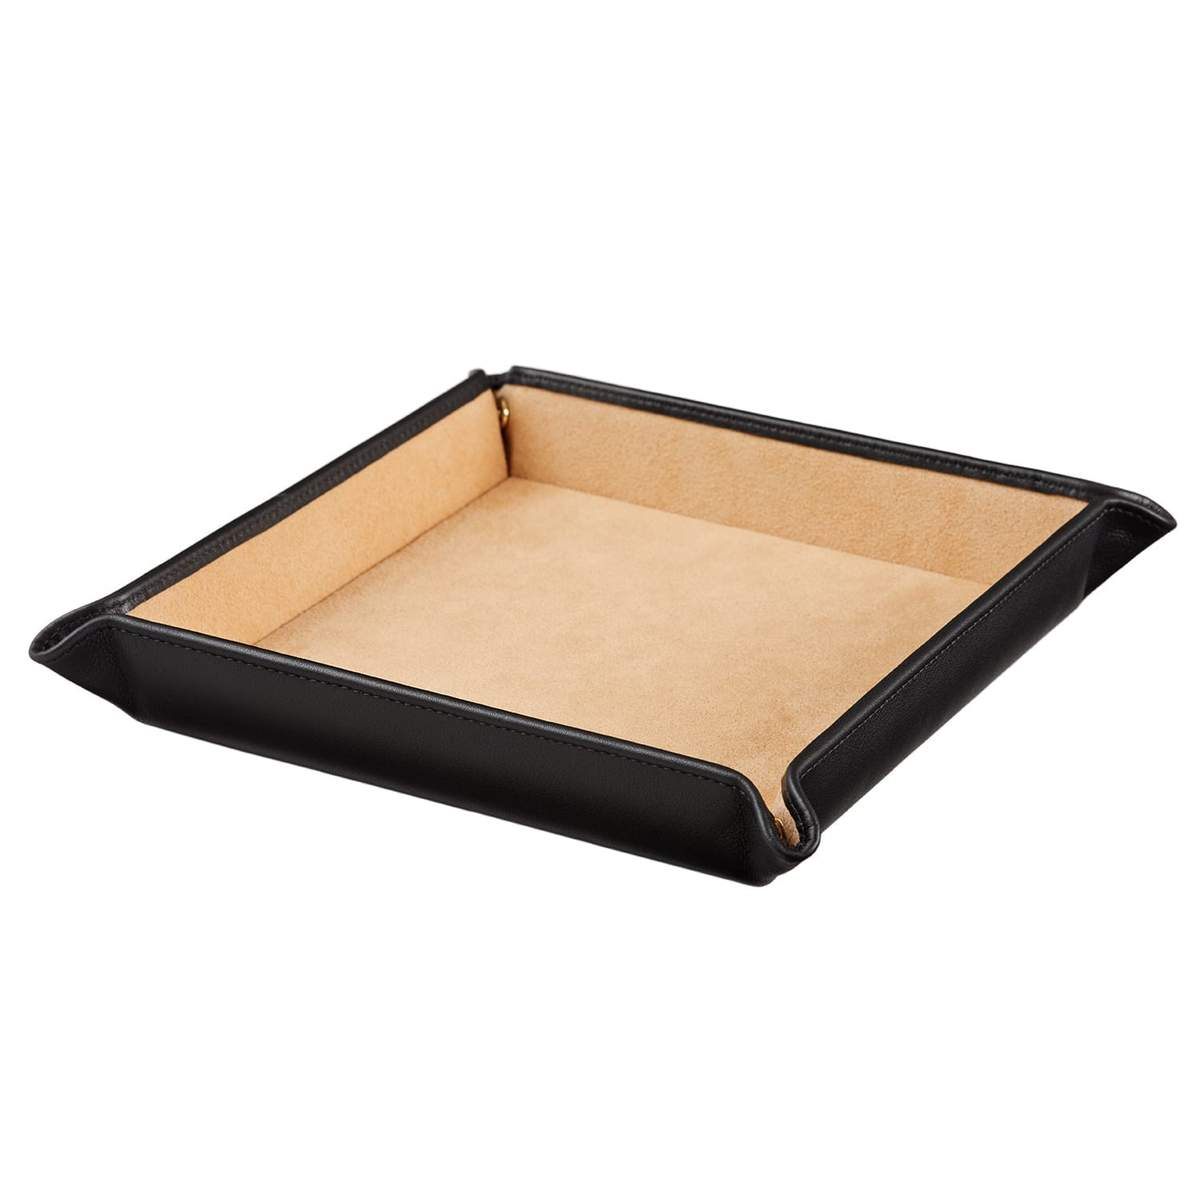 STOW Accessories Jet & Soft Sand Large Leather Valet Tray - Personalized